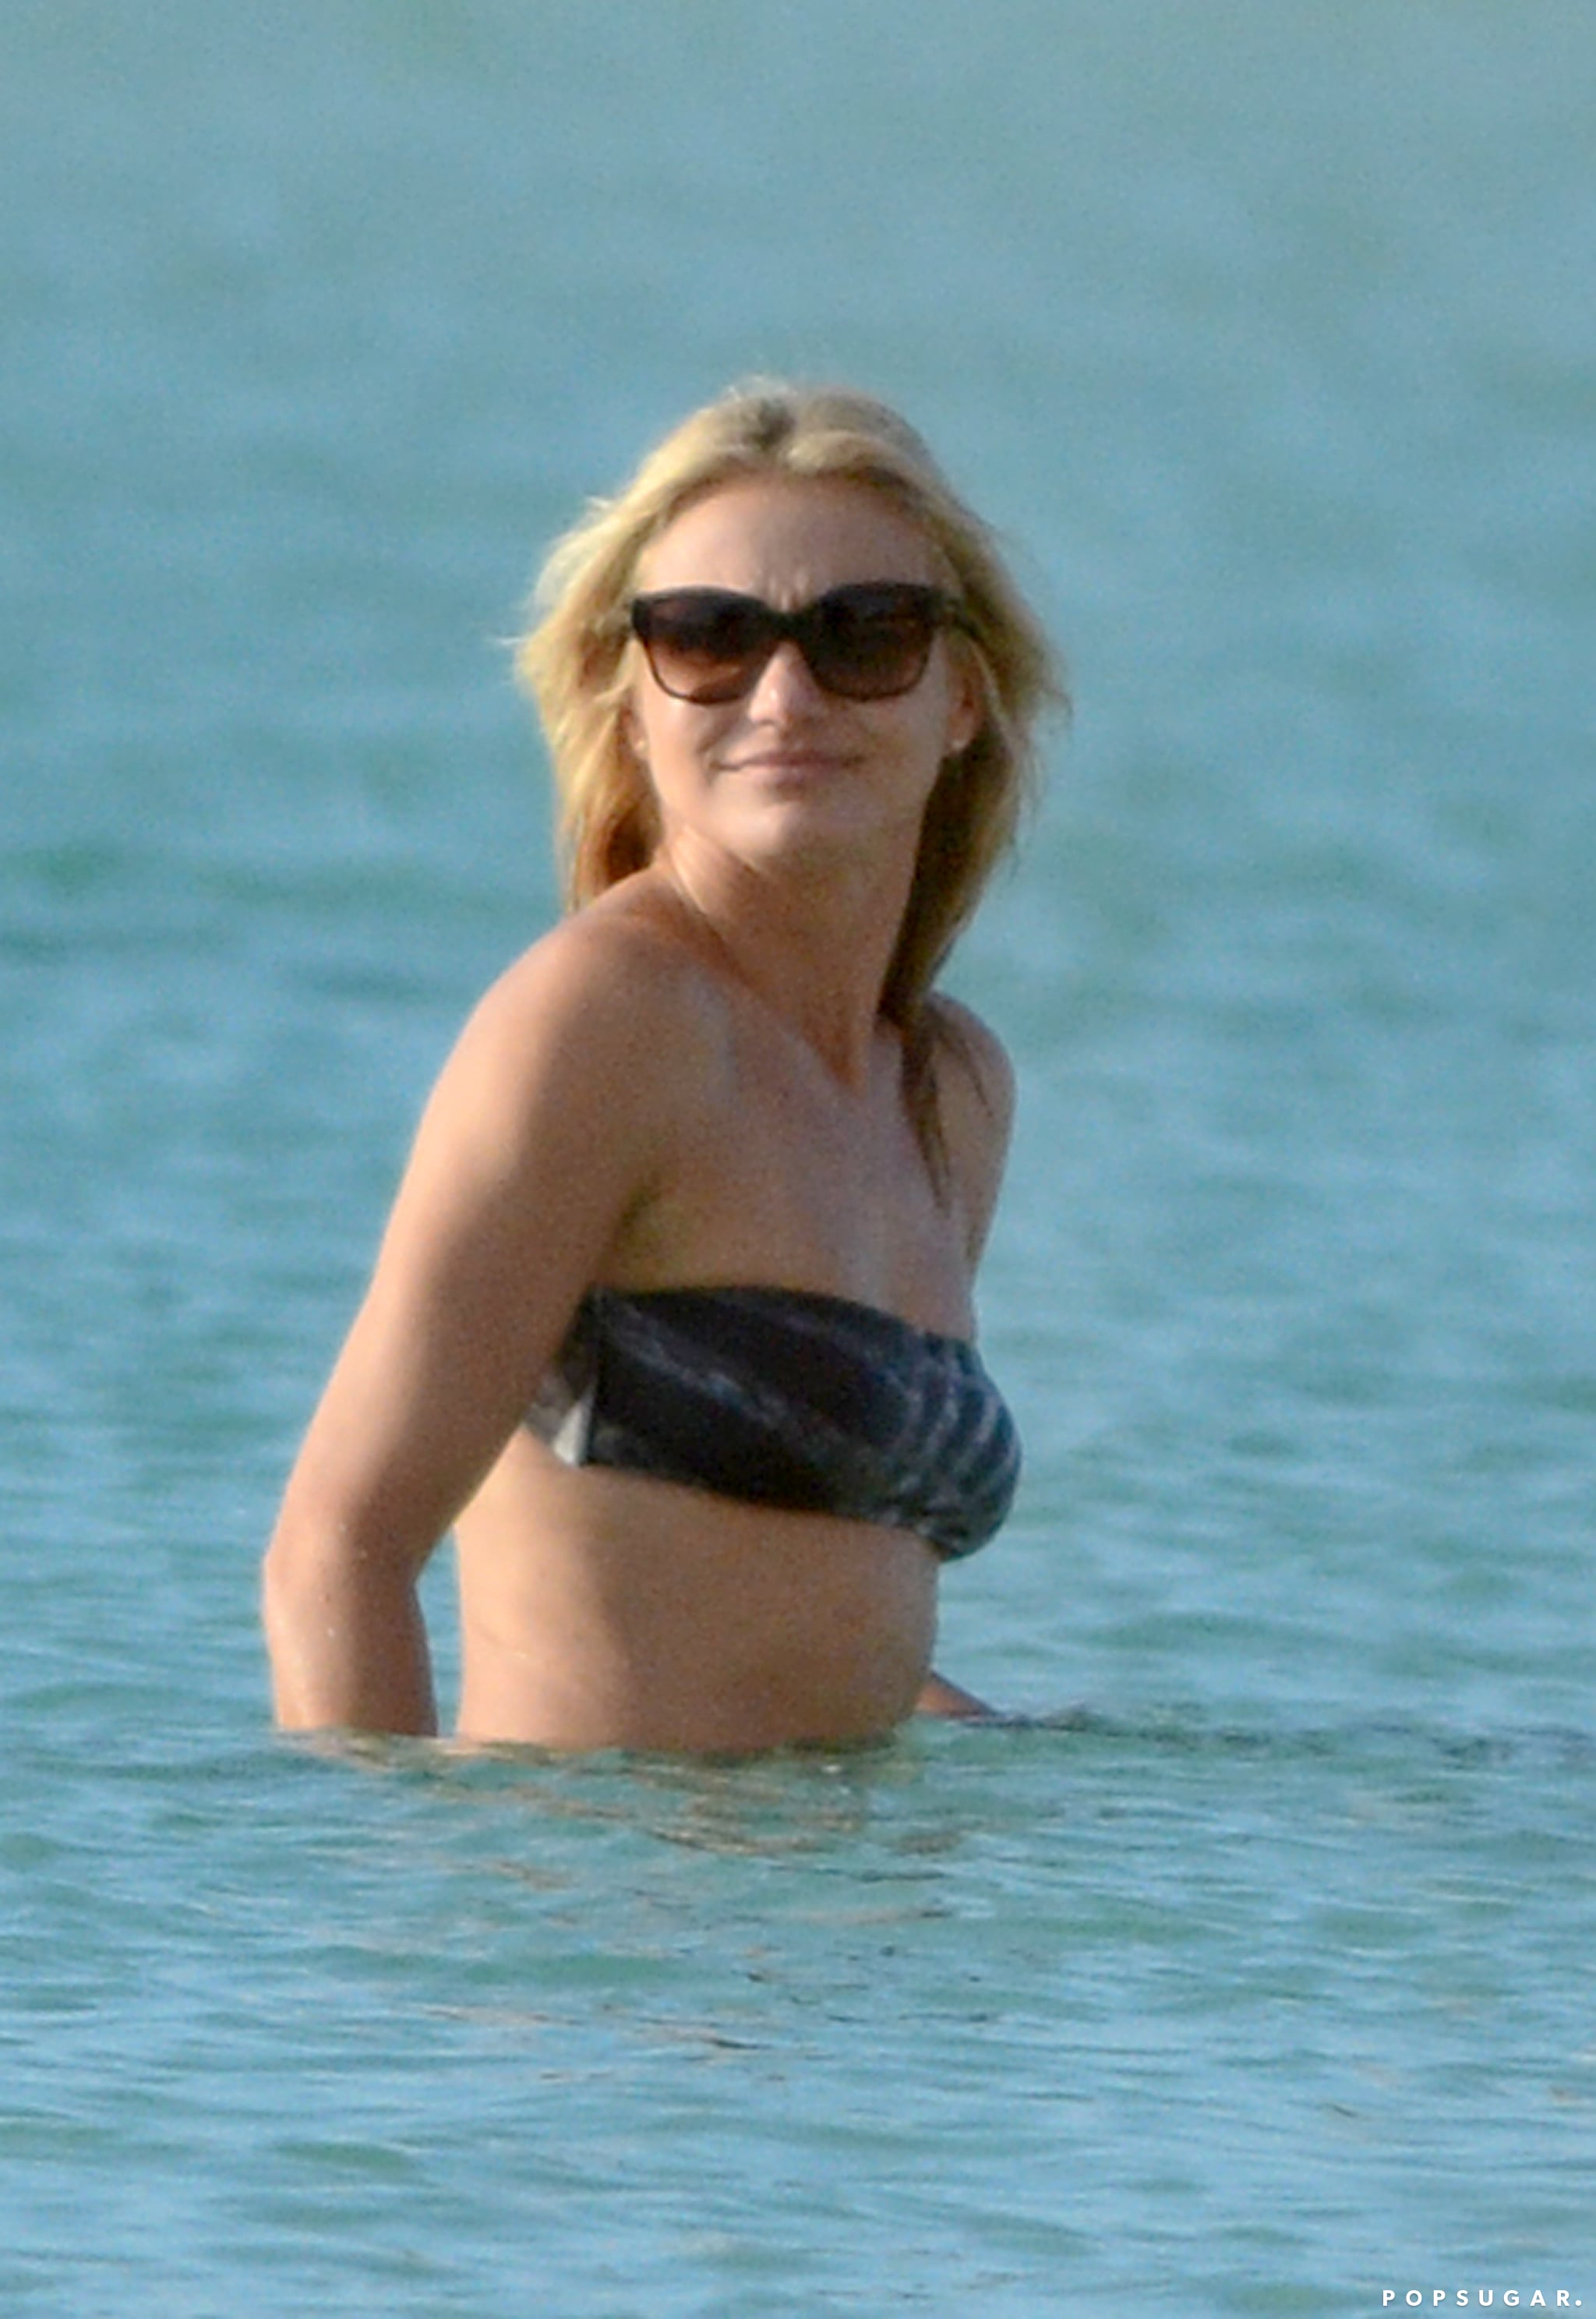 Cameron Diaz splashed in the water.